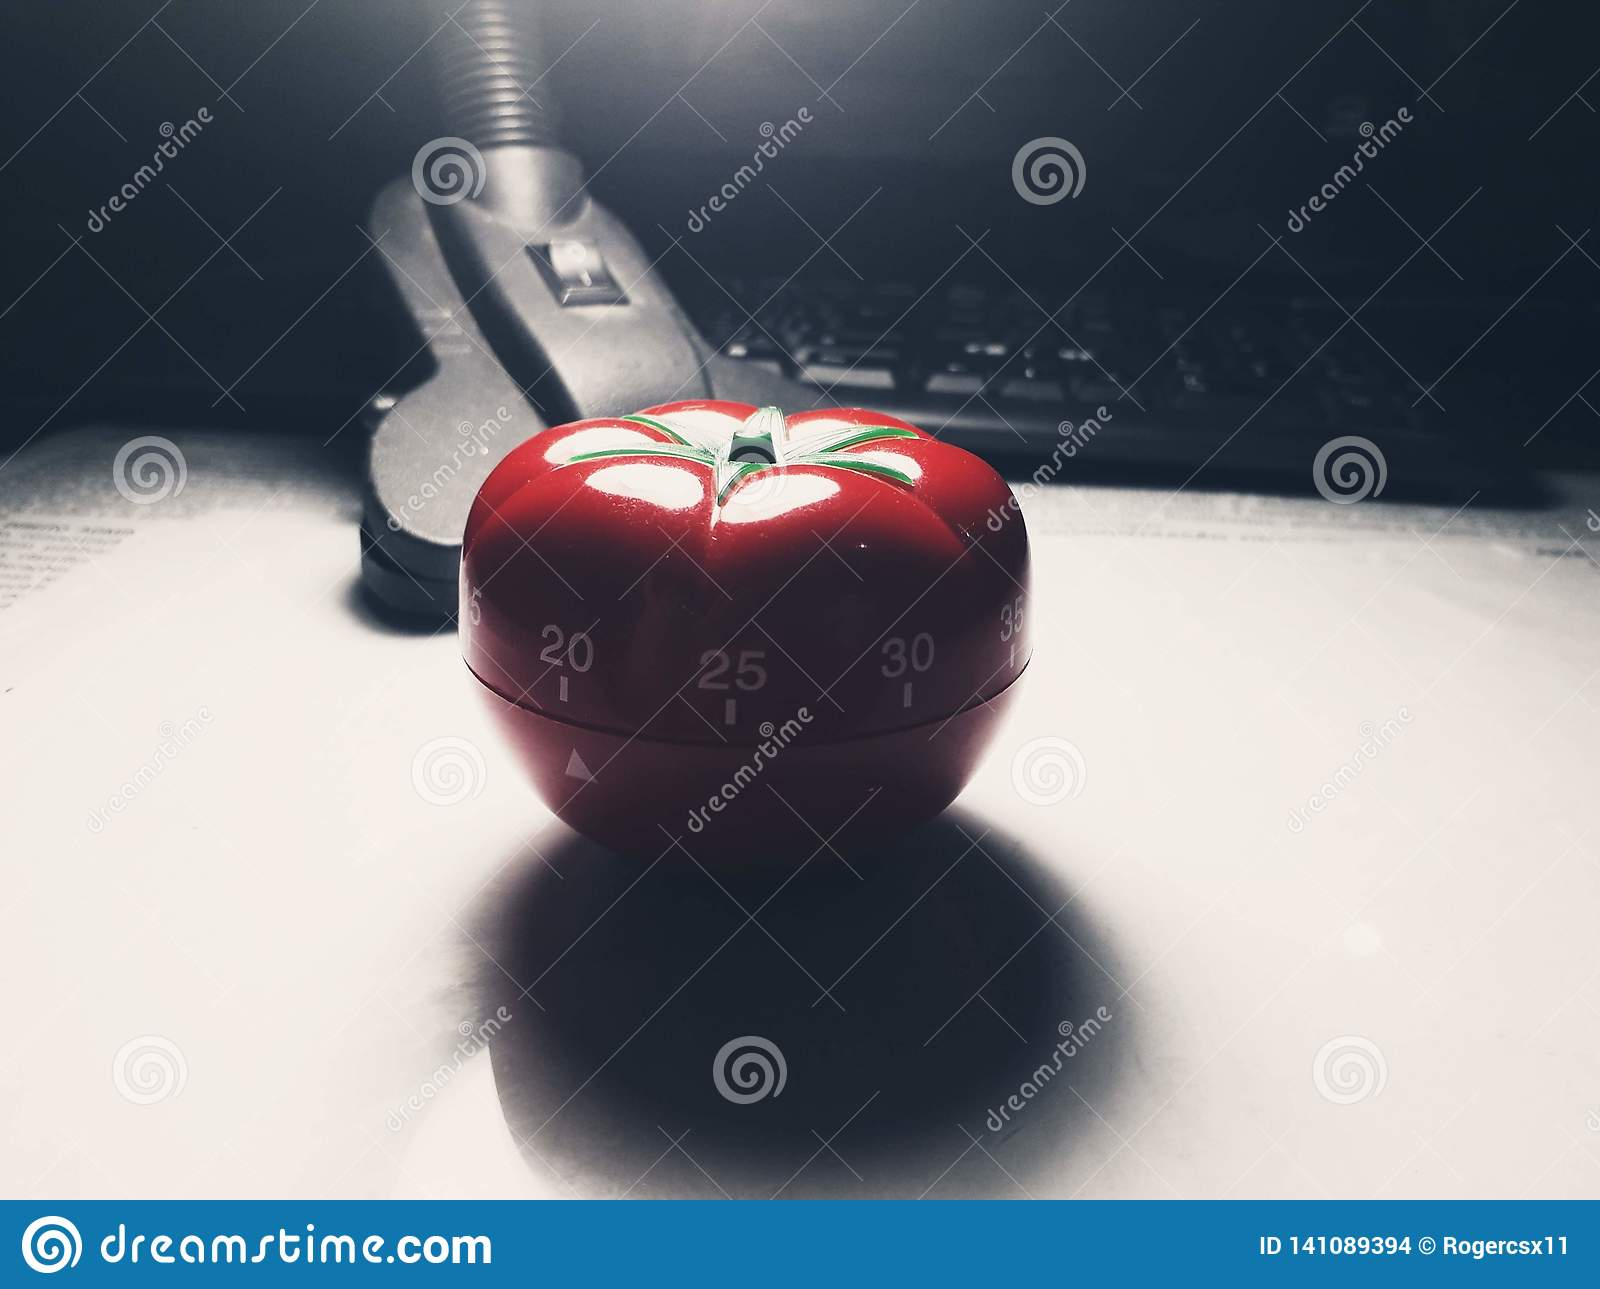 Red tomato shaped kitchen and pomodoro timer.